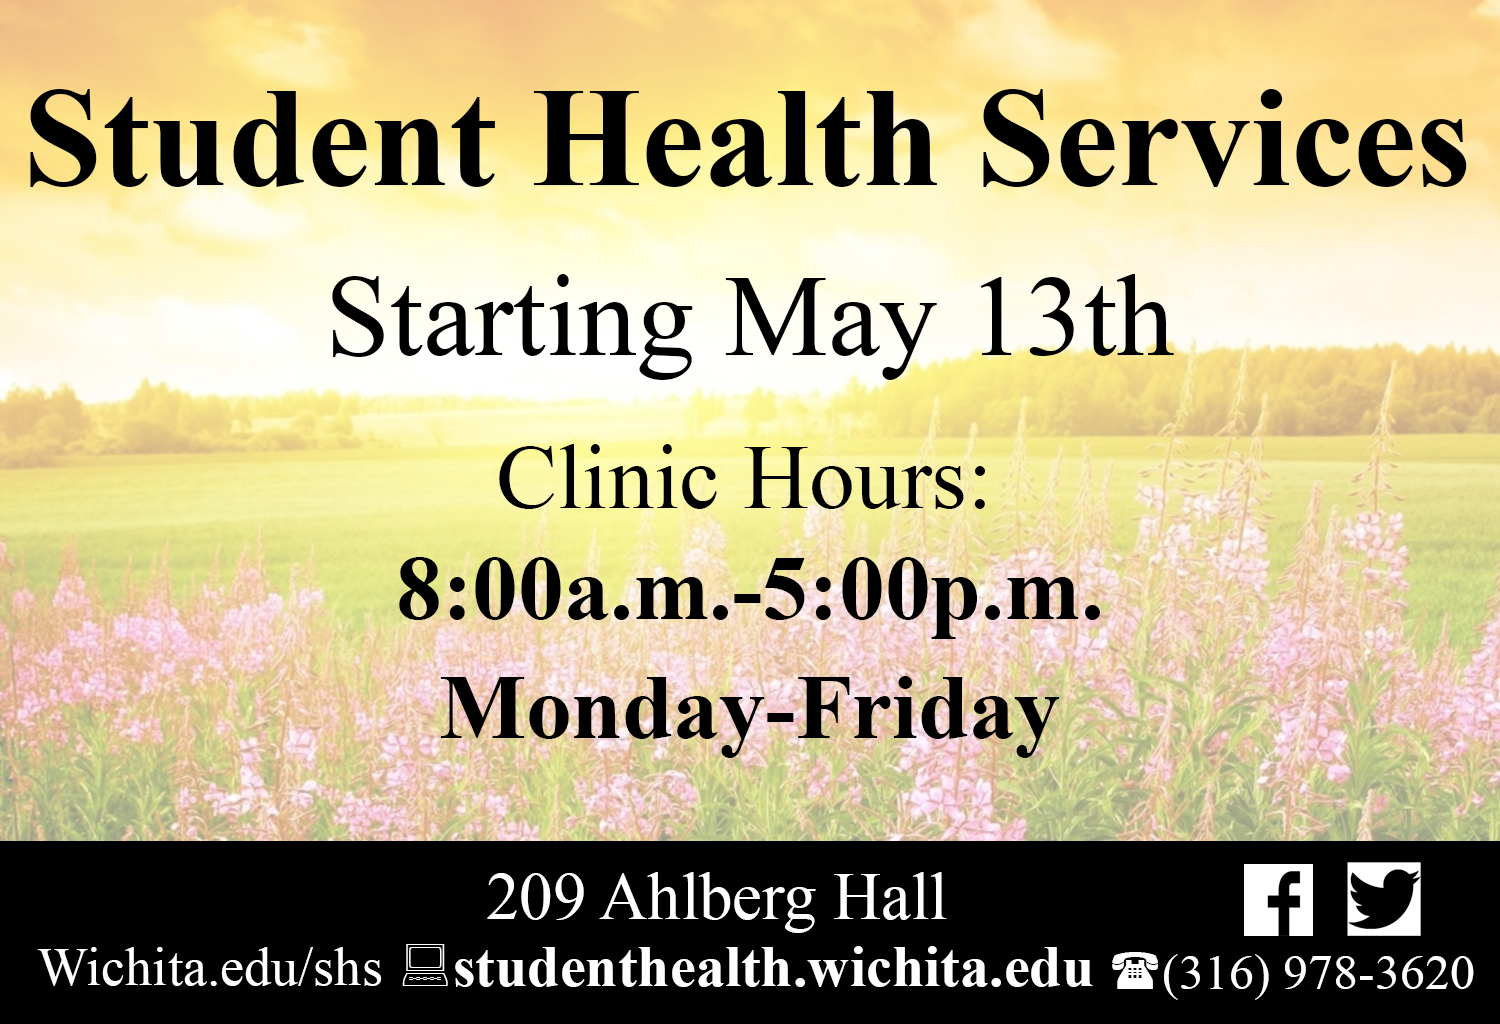 Student Health Services starting May 13 clinic hours from 8 am to 5 pm Monday through Friday.